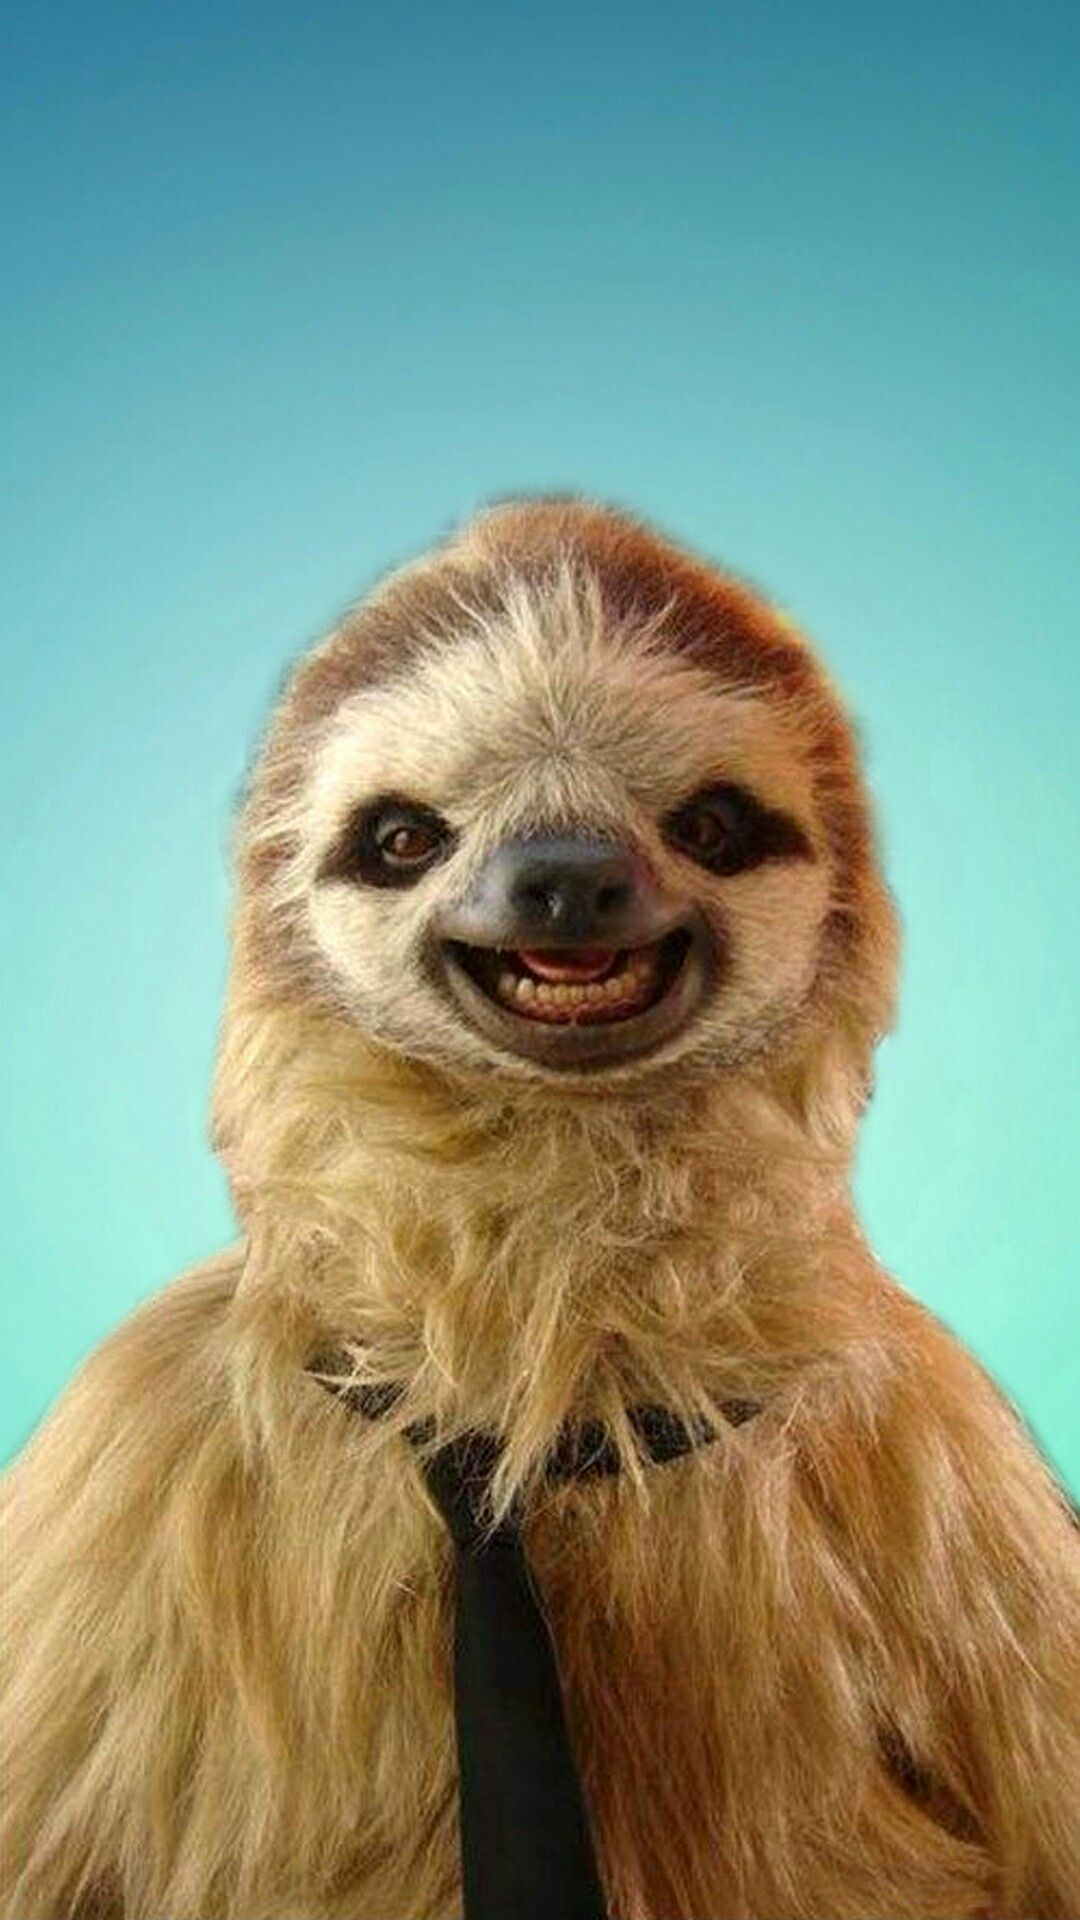 Sloth a cute sloth phone wallpaper i made sloths - Phone animal wallpapers ...